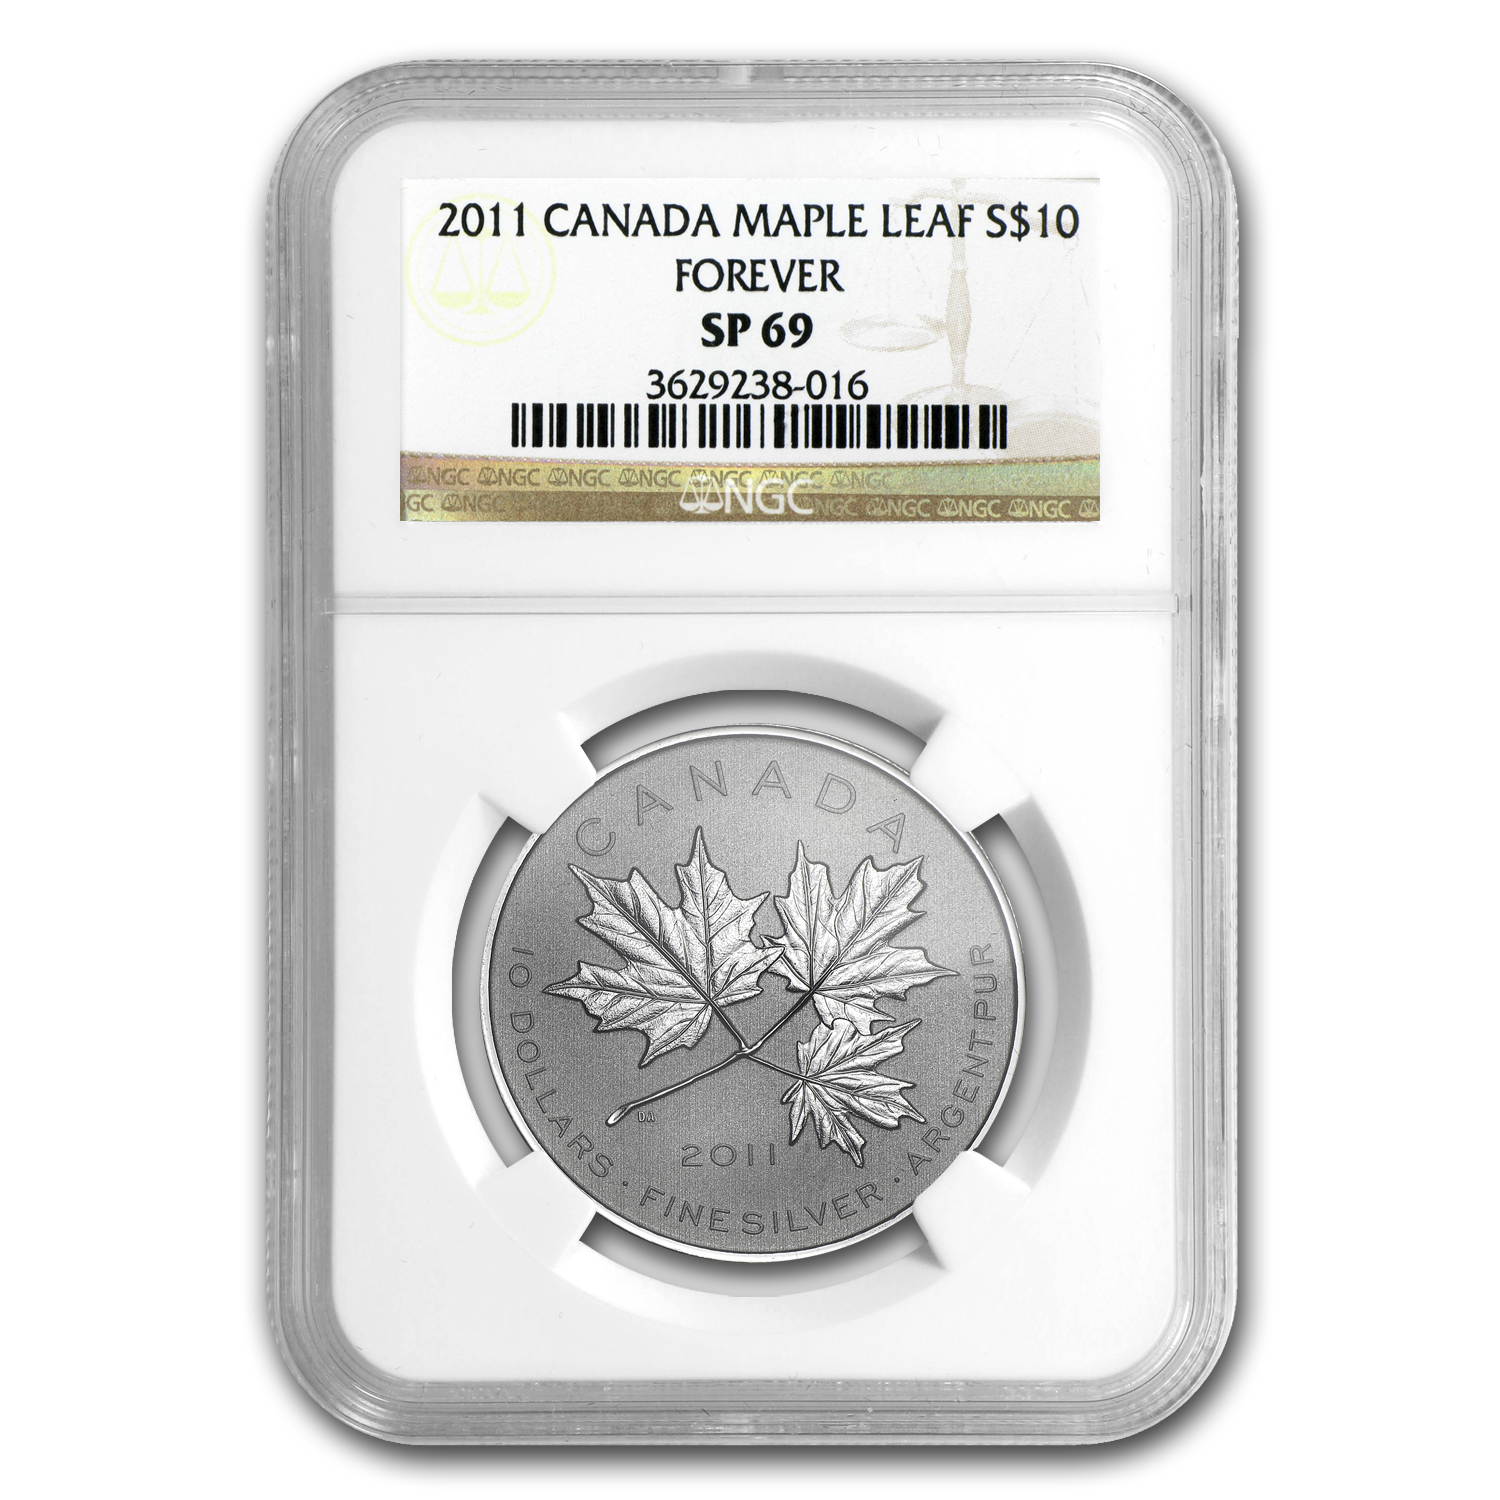 2011 Canada 1/2 oz Silver $10 Maple Leaf Forever SP-69 NGC